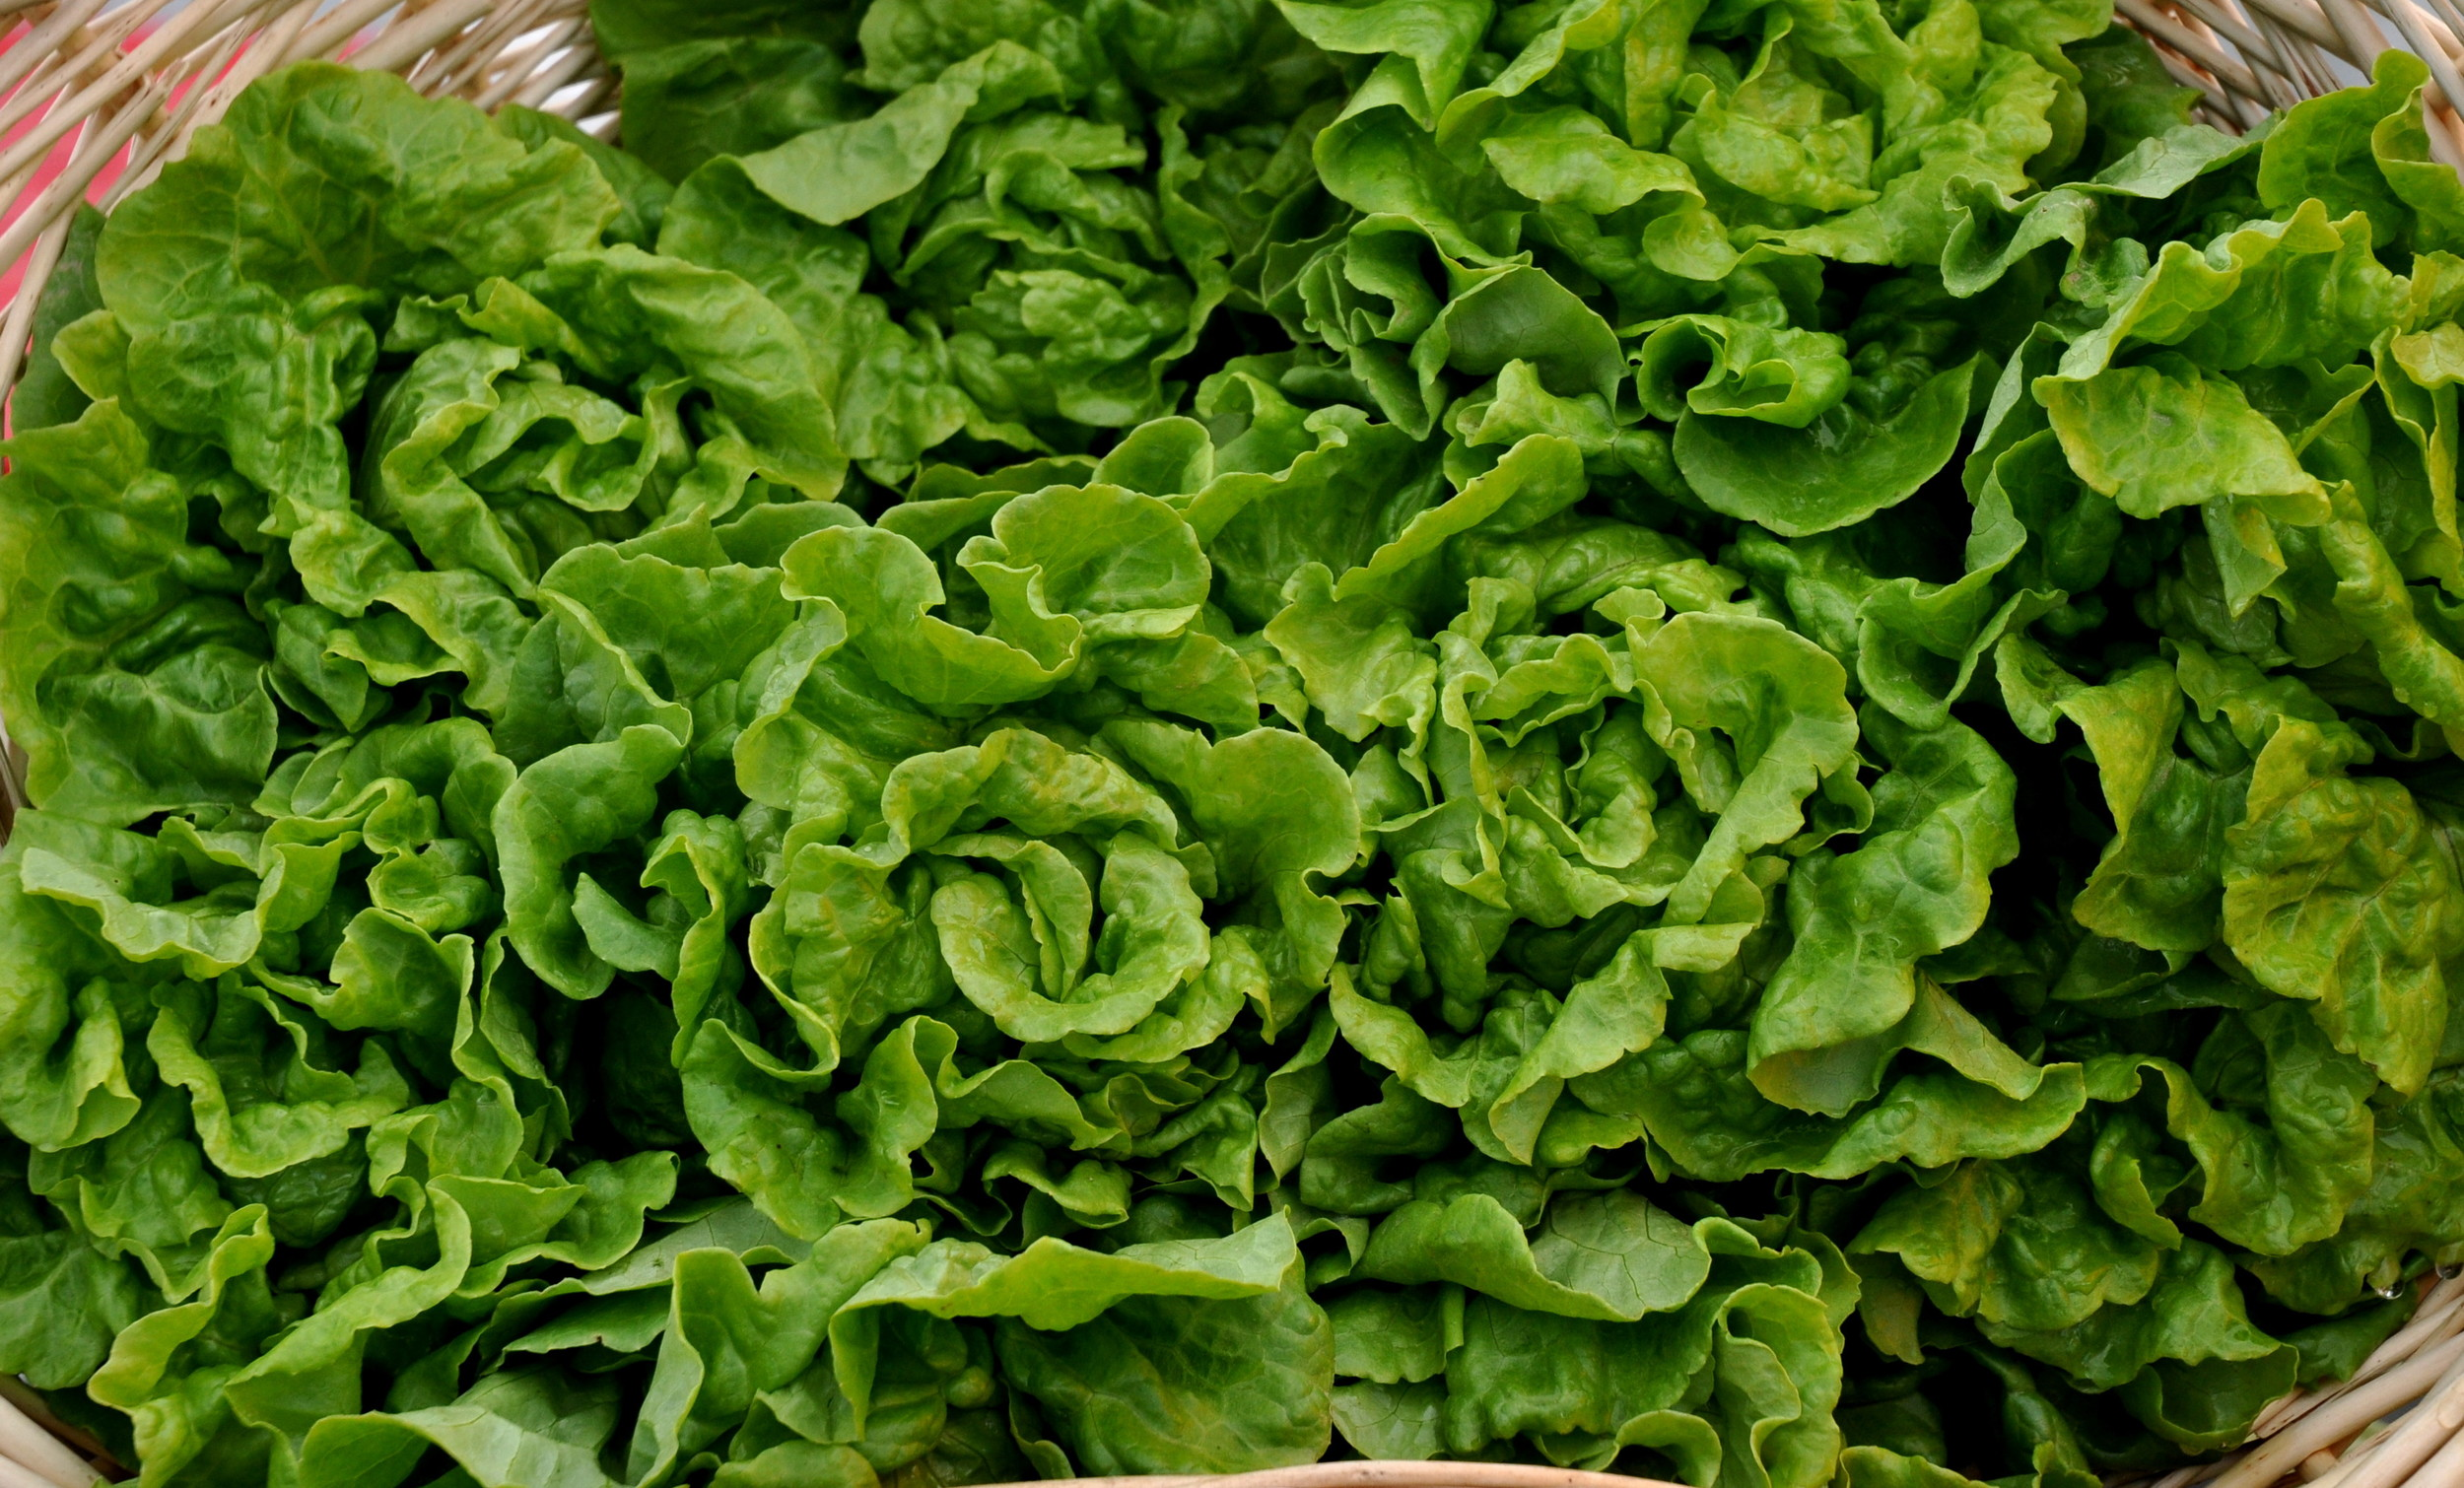 Tom Thumb lettuce from One Leaf Farm. Photo copyright 2013 by Zachary D. Lyons.